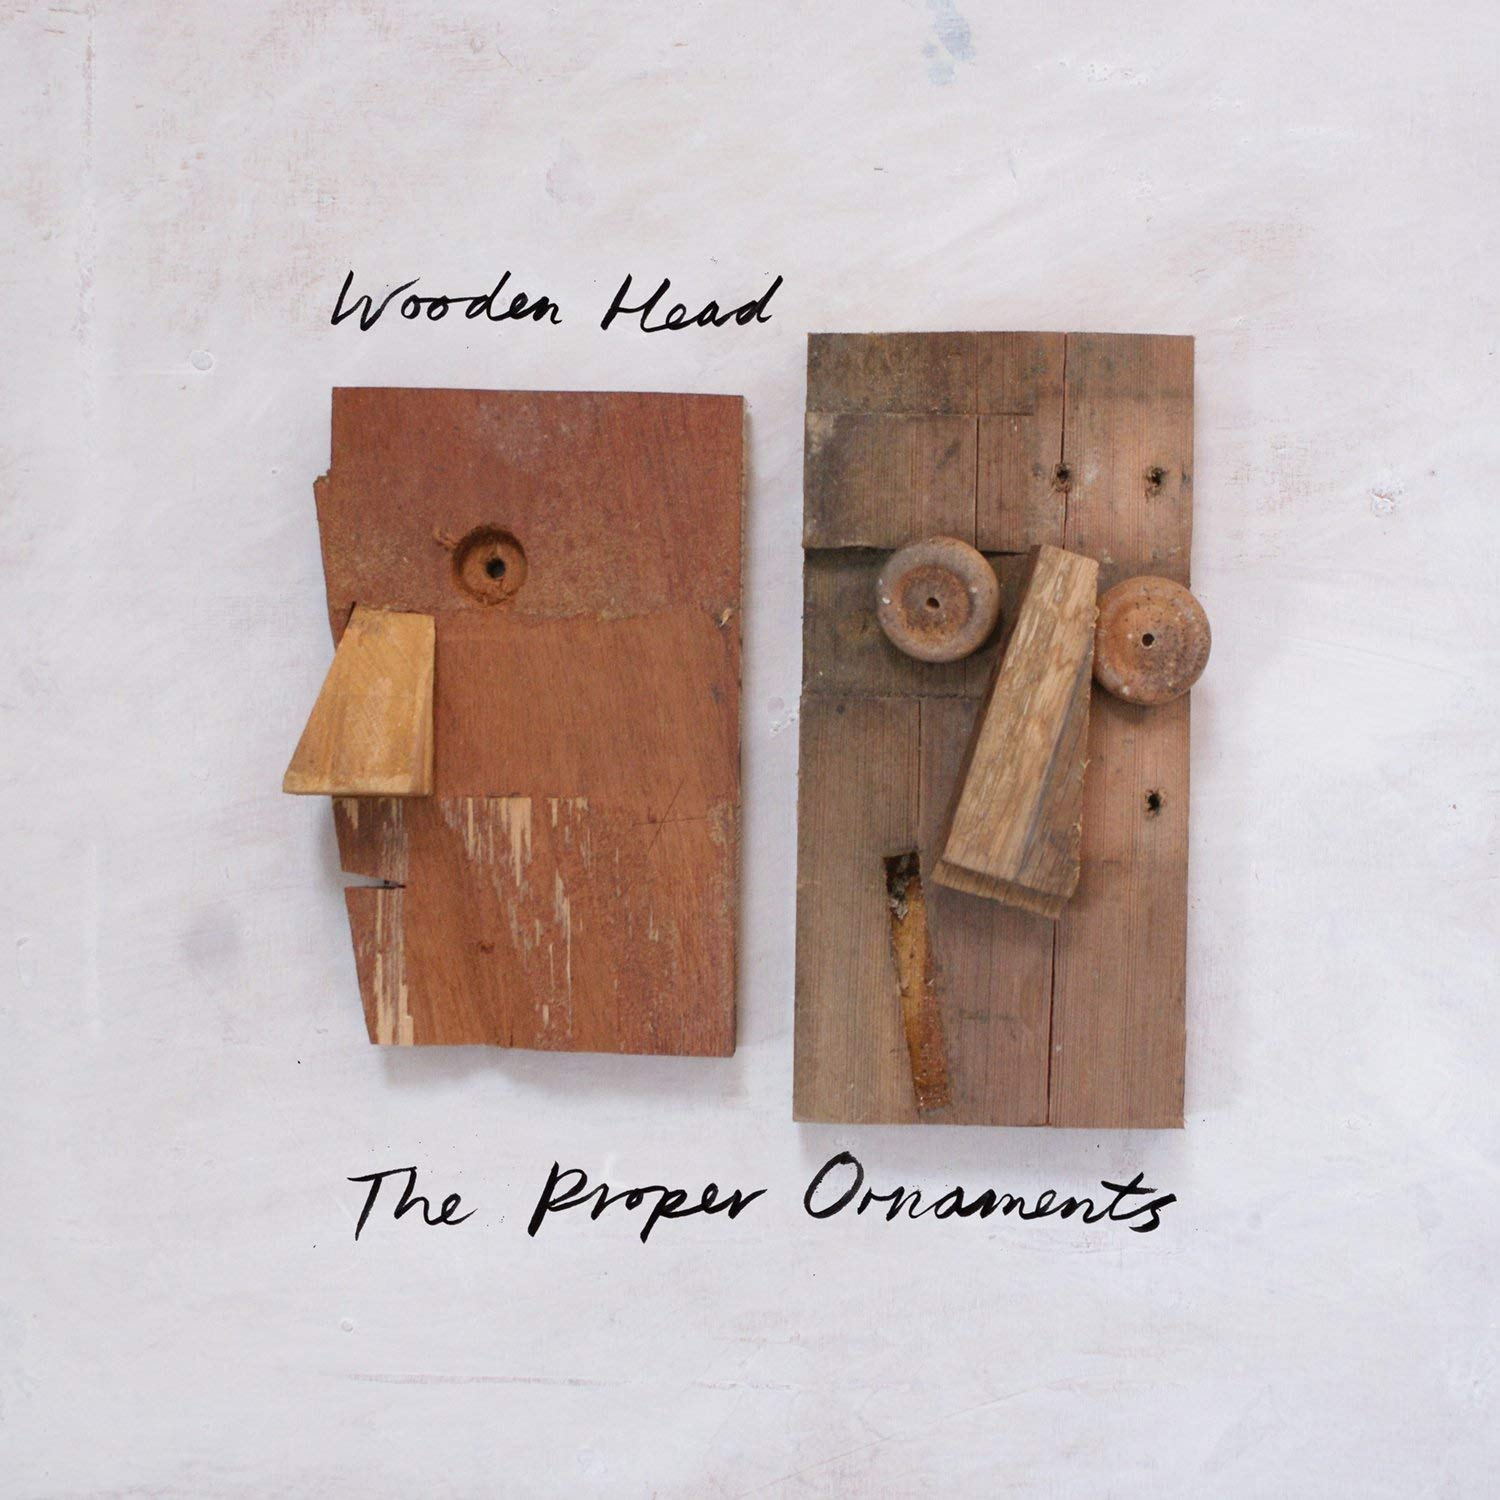 Image of Wooden Head / The Proper Ornaments